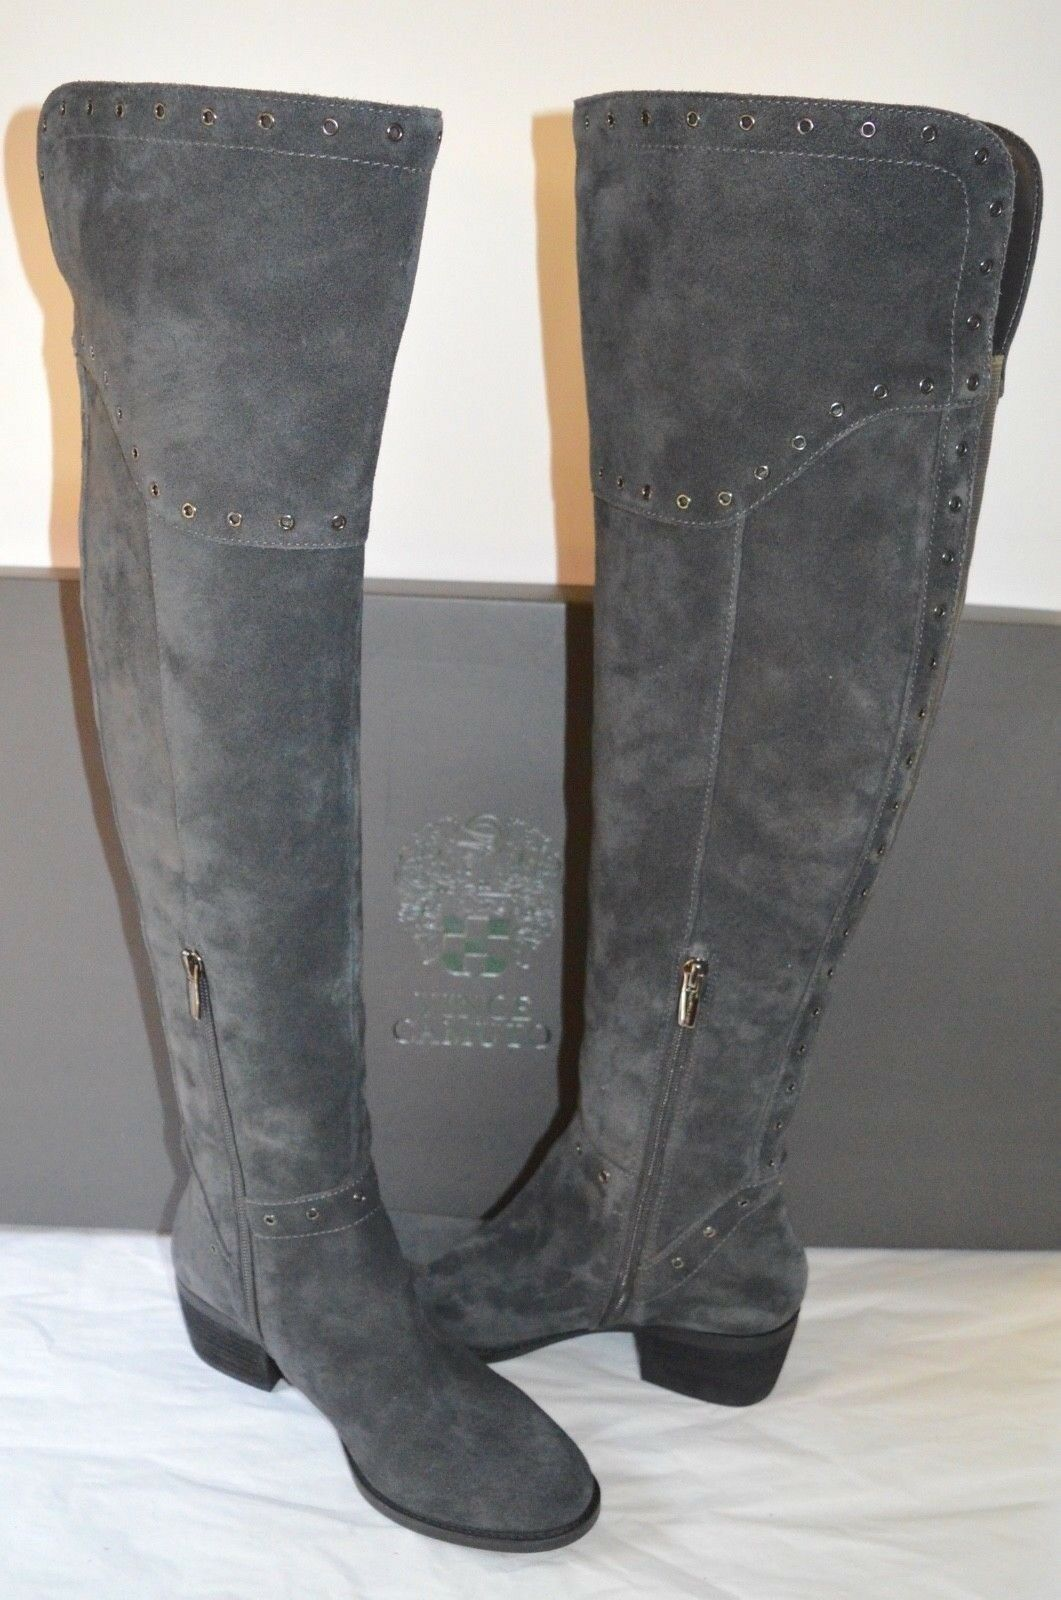 New  200 Vince Camuto Camuto Camuto Bestan Granite Peak Verona Over the Knee grau Suede Stiefel ec0876